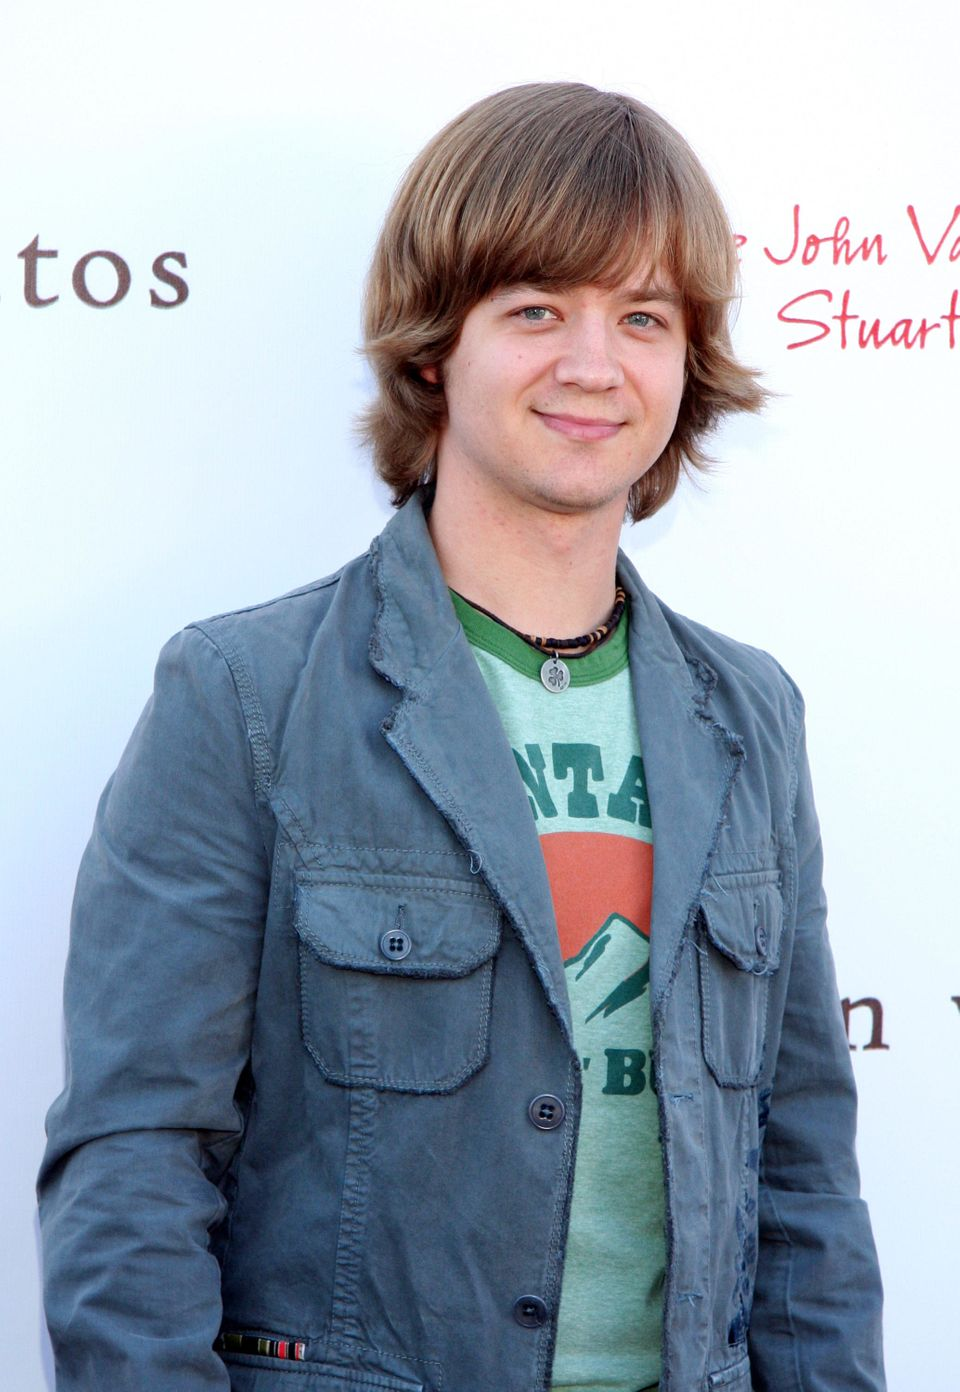 In 2006, he played 15-year-old Jackson Stewart on <em>Hannah Montana</em> when he was 29 years old.   Age difference: 14 year